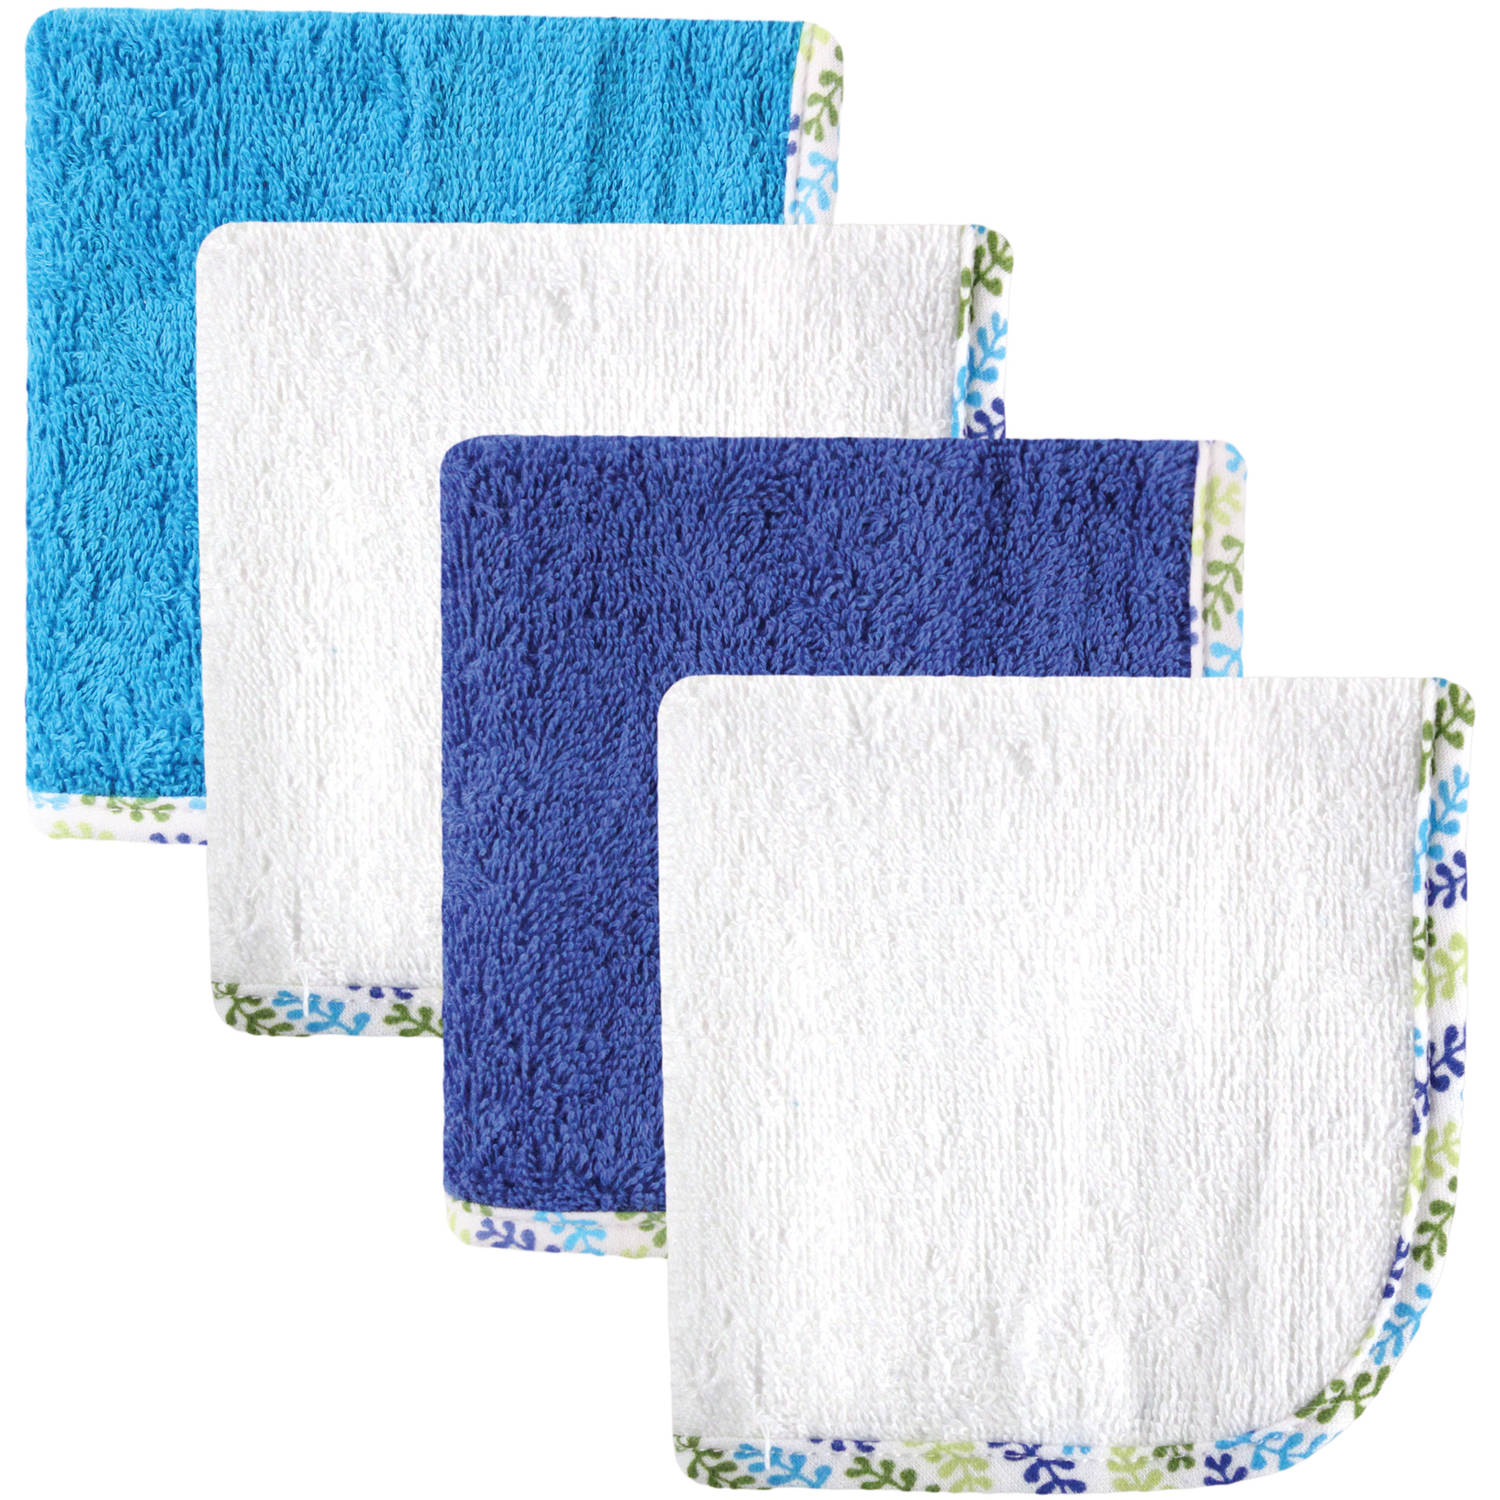 Hudson Baby Woven Washcloth, Blue White, 4 Pack